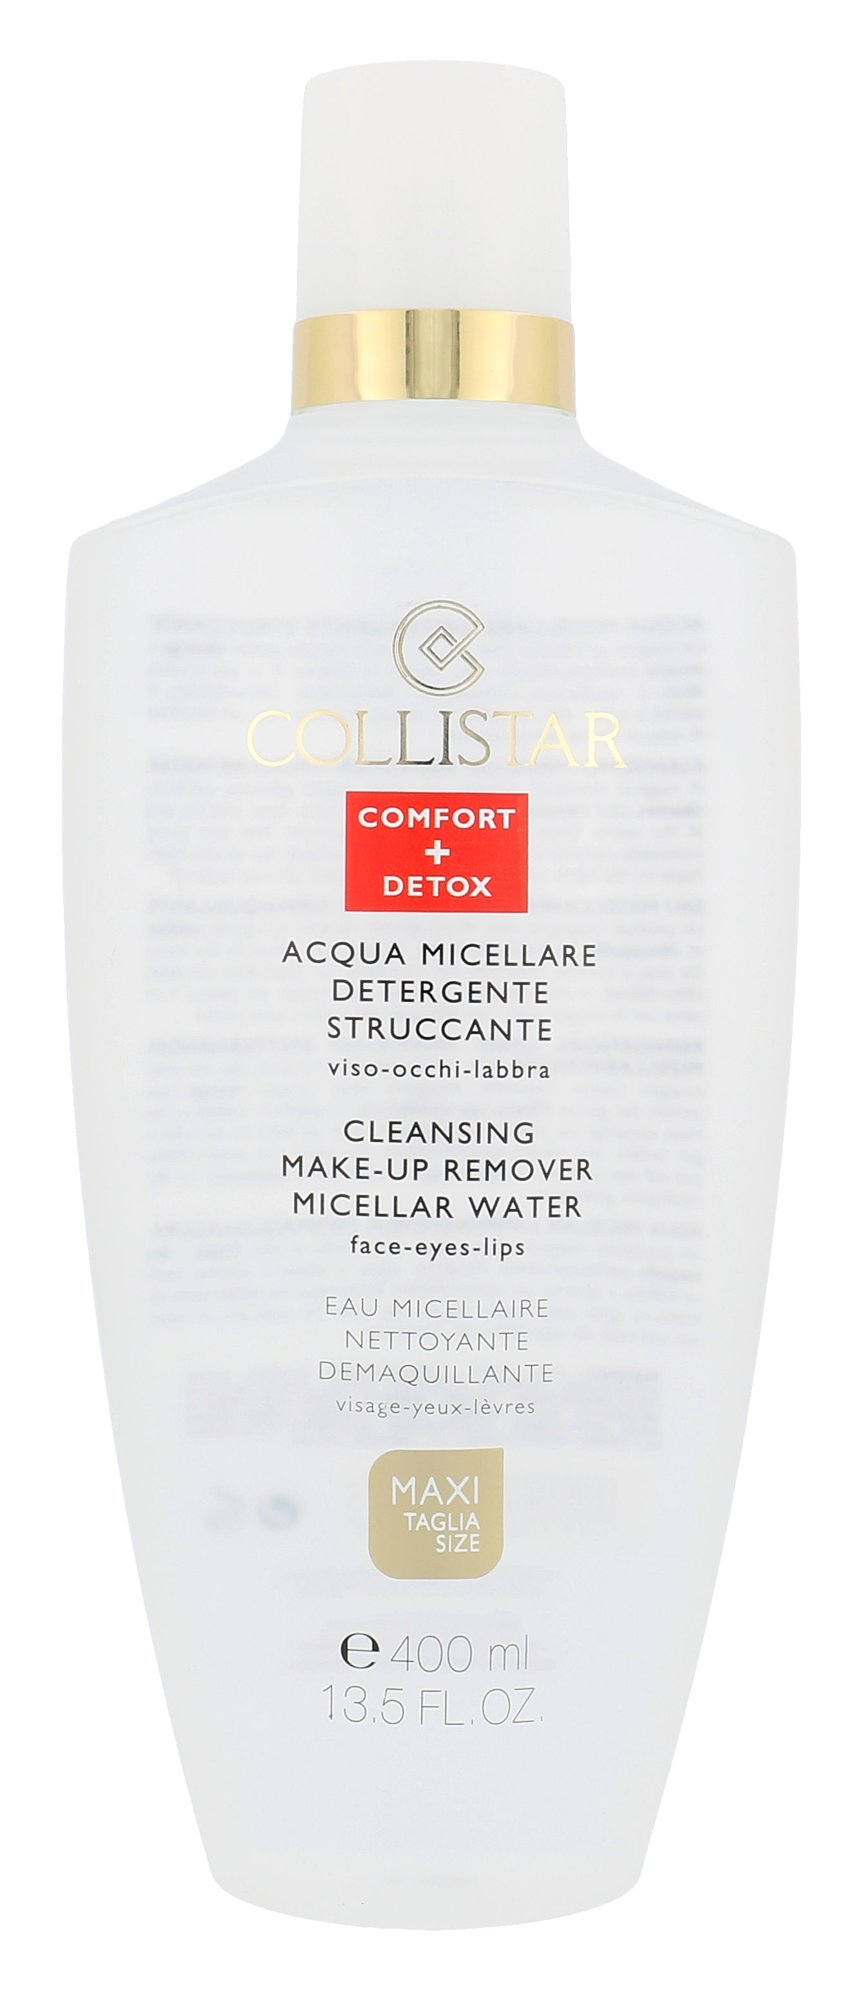 Makiažo valiklis Collistar Micellar Water Cleansing Make-up Remover